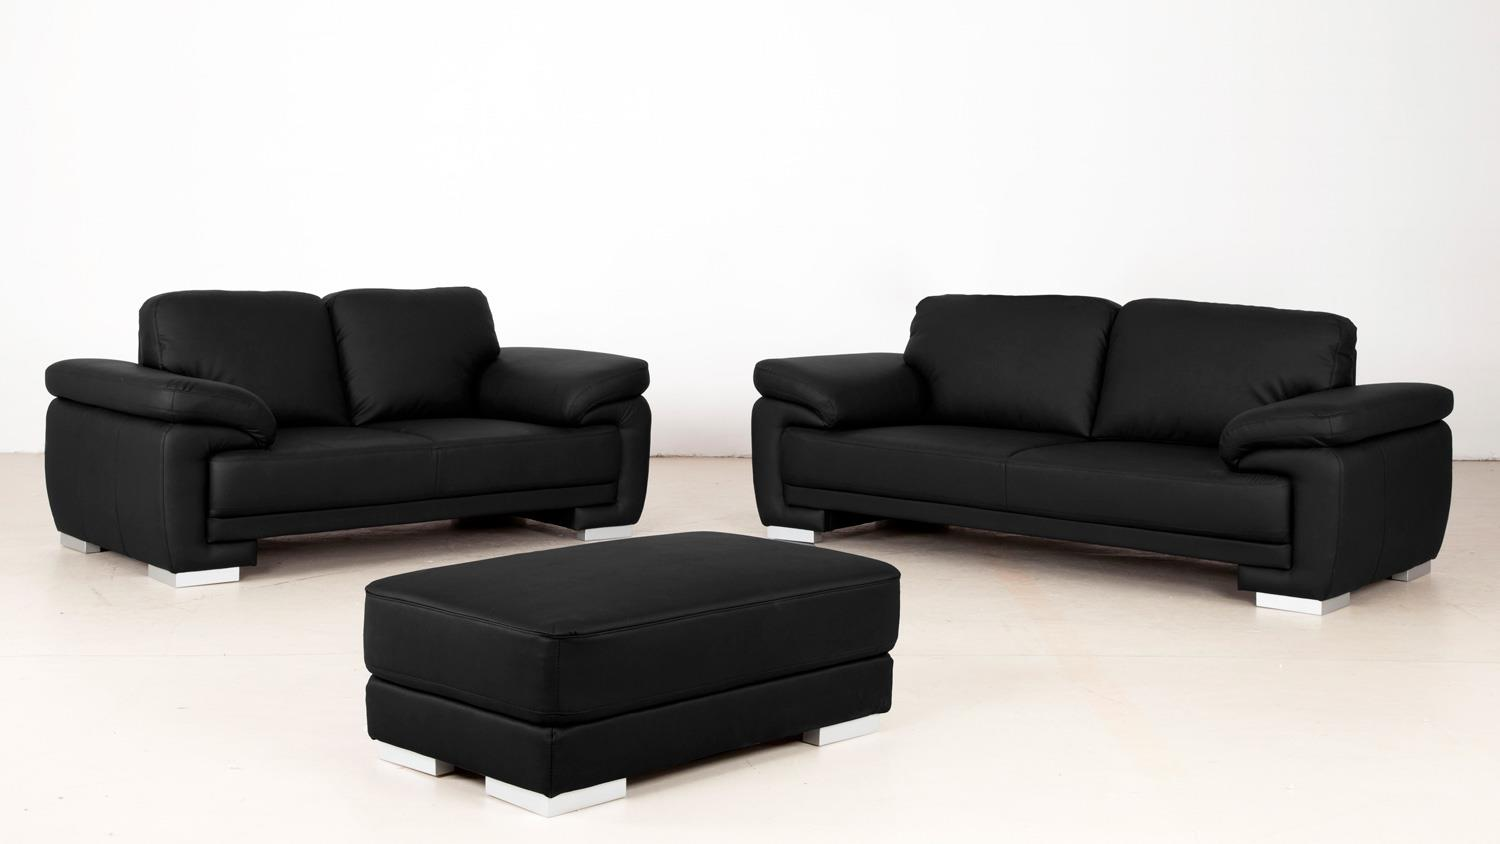 sofa laura 3 sitzer bezug schwarz f e massiv silber mit nosagfederung. Black Bedroom Furniture Sets. Home Design Ideas